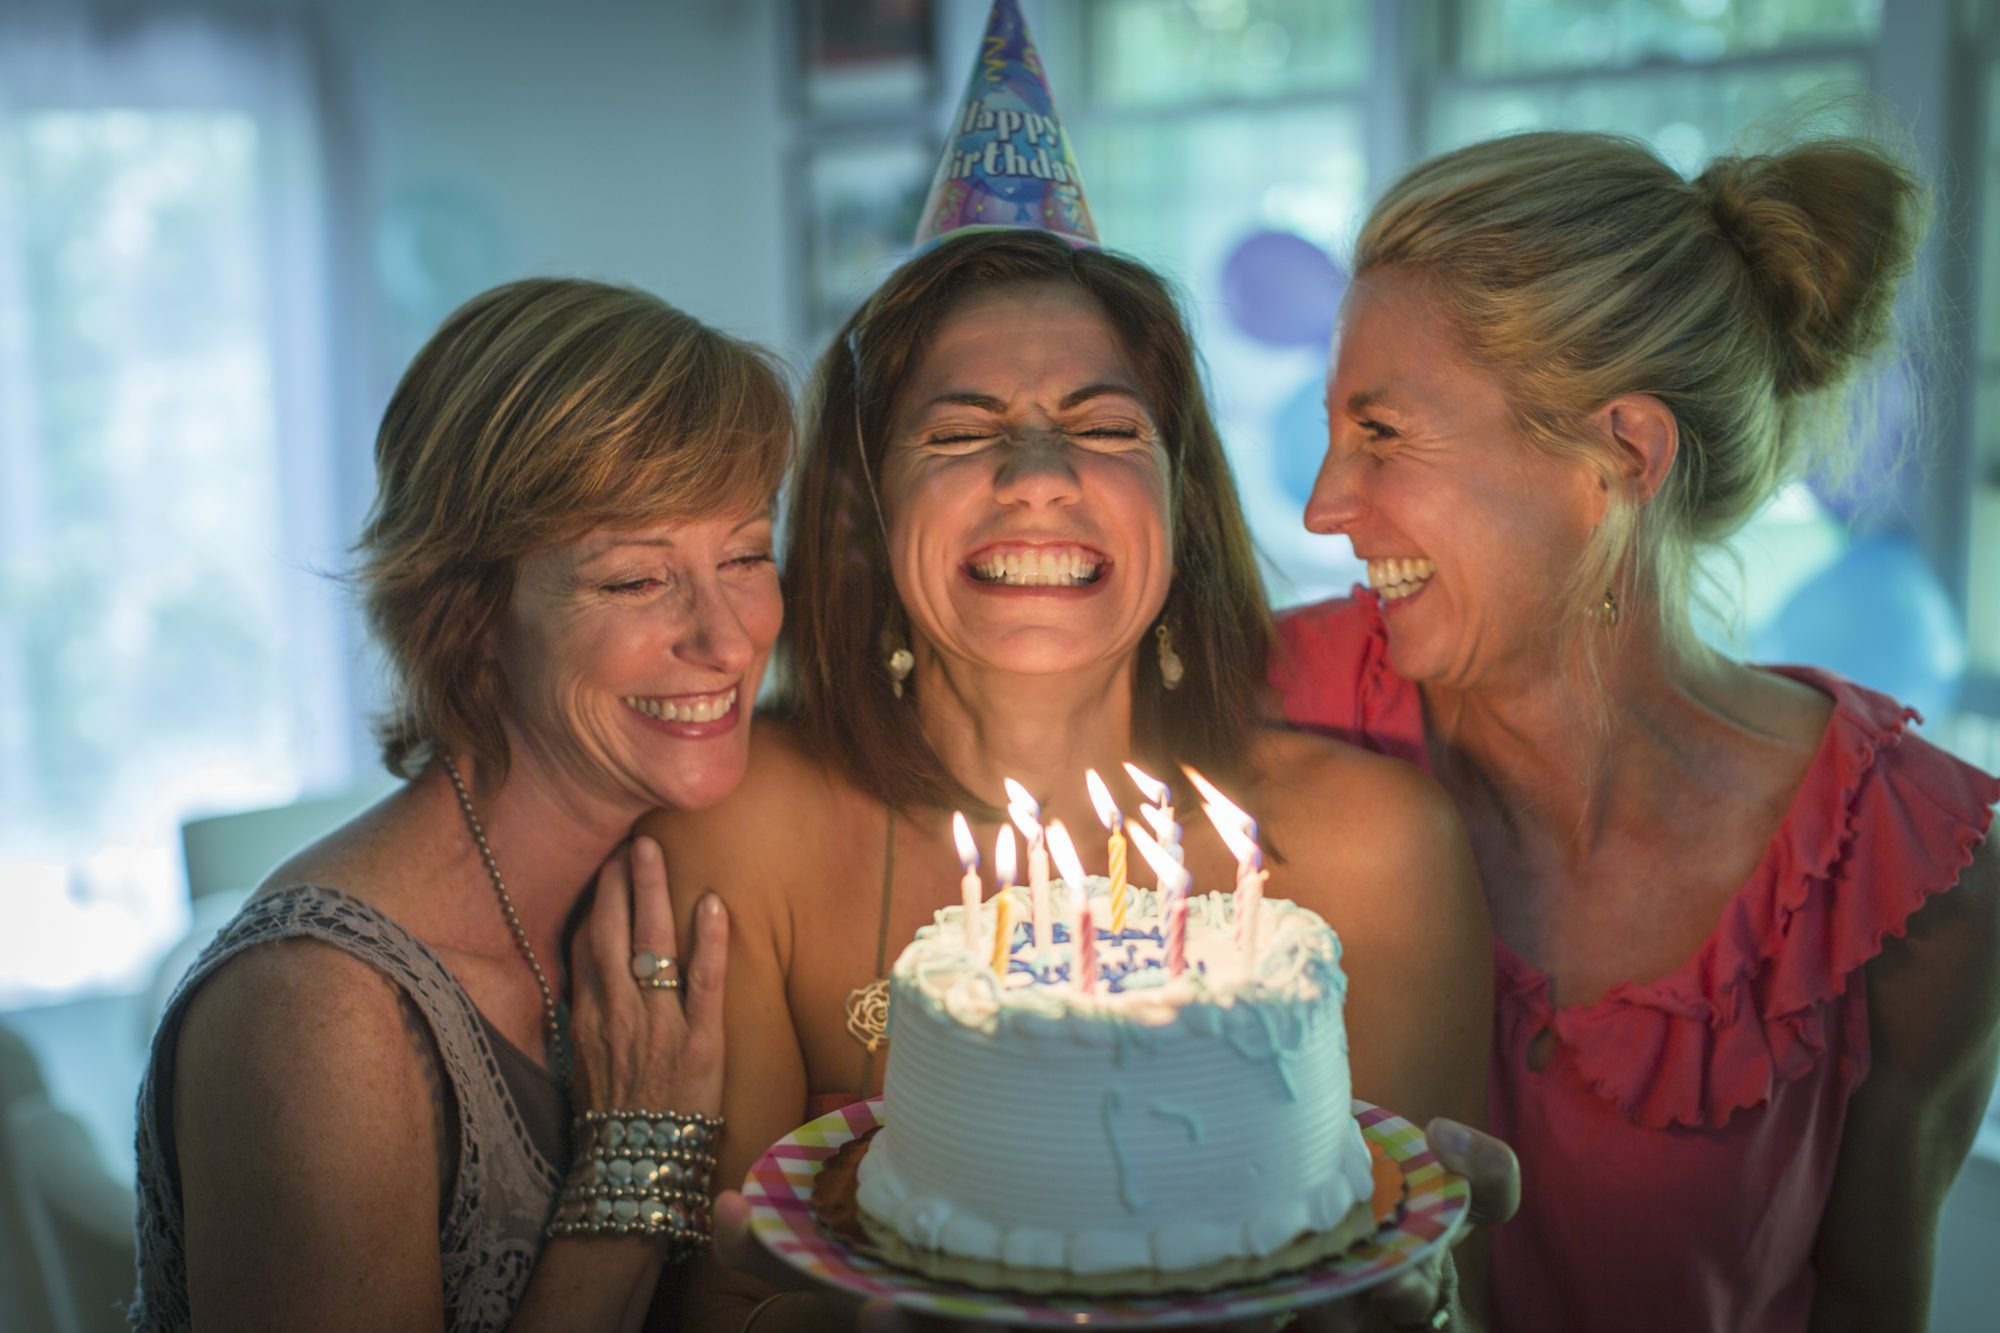 Friends Laughing with Birthday Cake